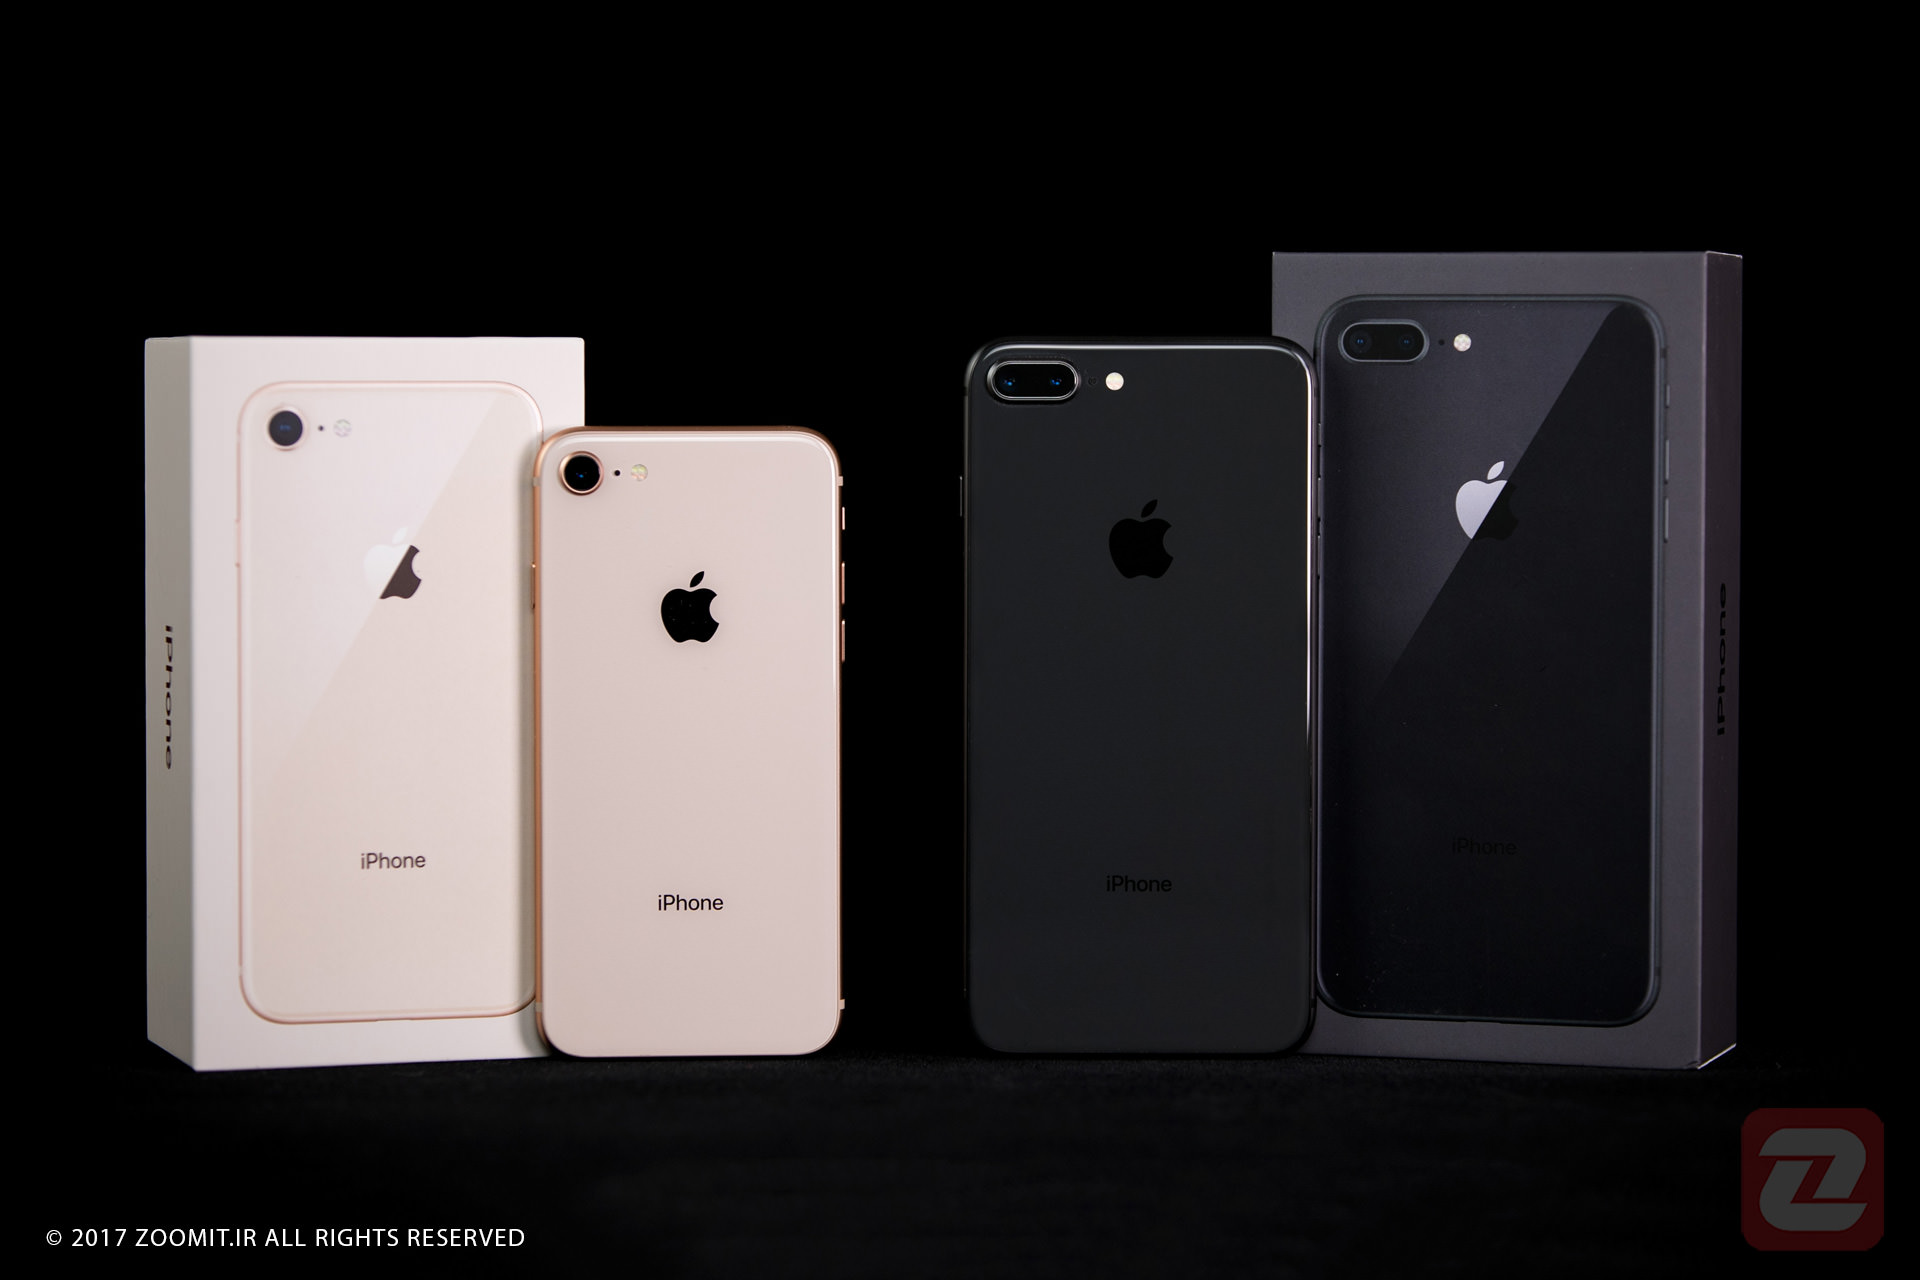 آیفون 8 ، آیفون 8 پلاس / iphone 8, iphone 8 plus